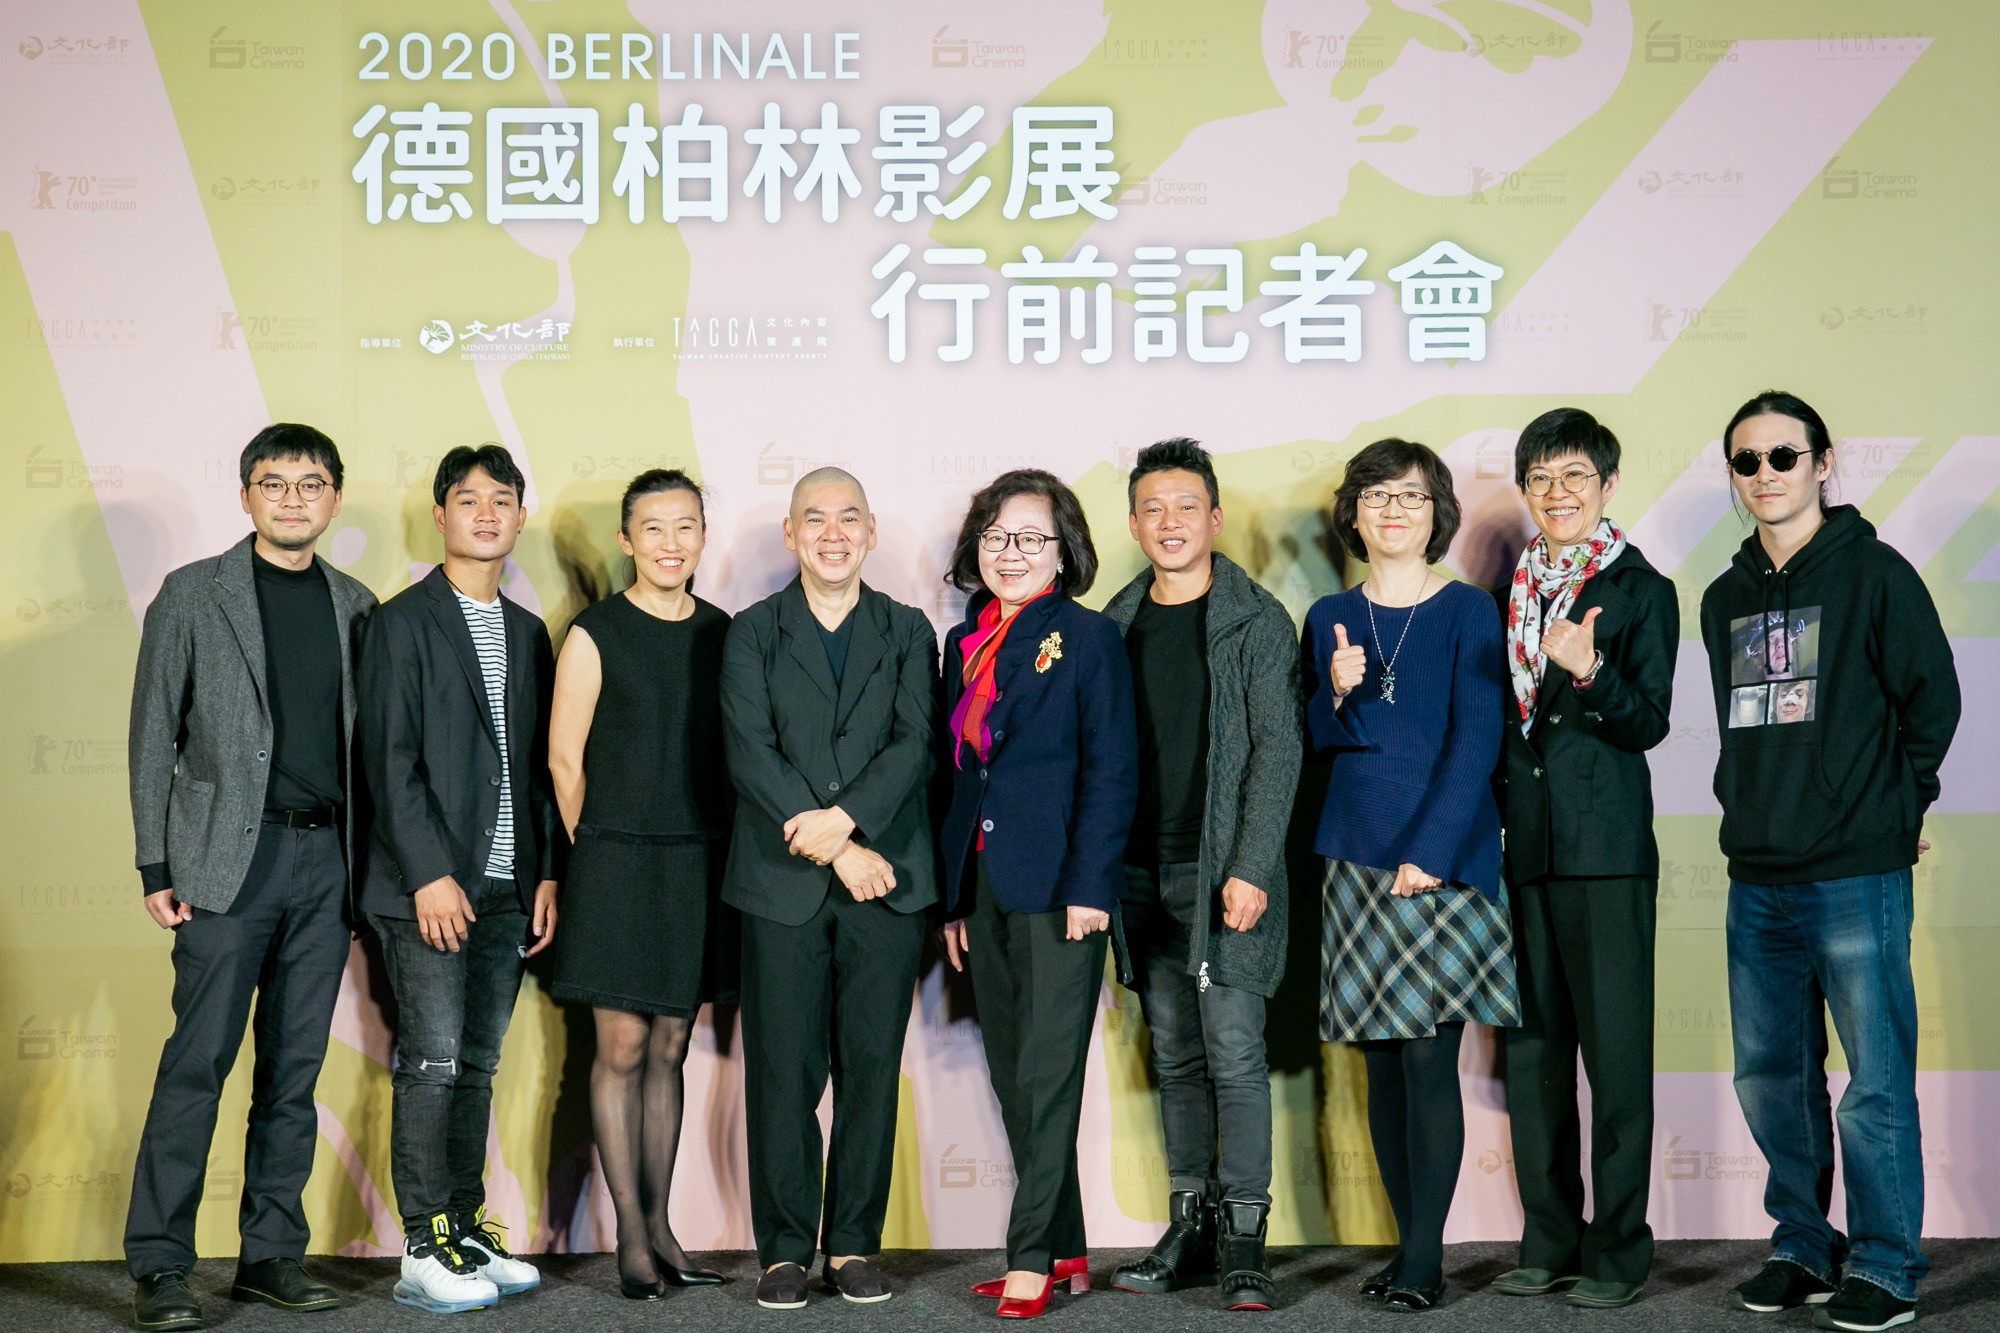 Taiwanese film professionals, projects geared for 70th Berlinale